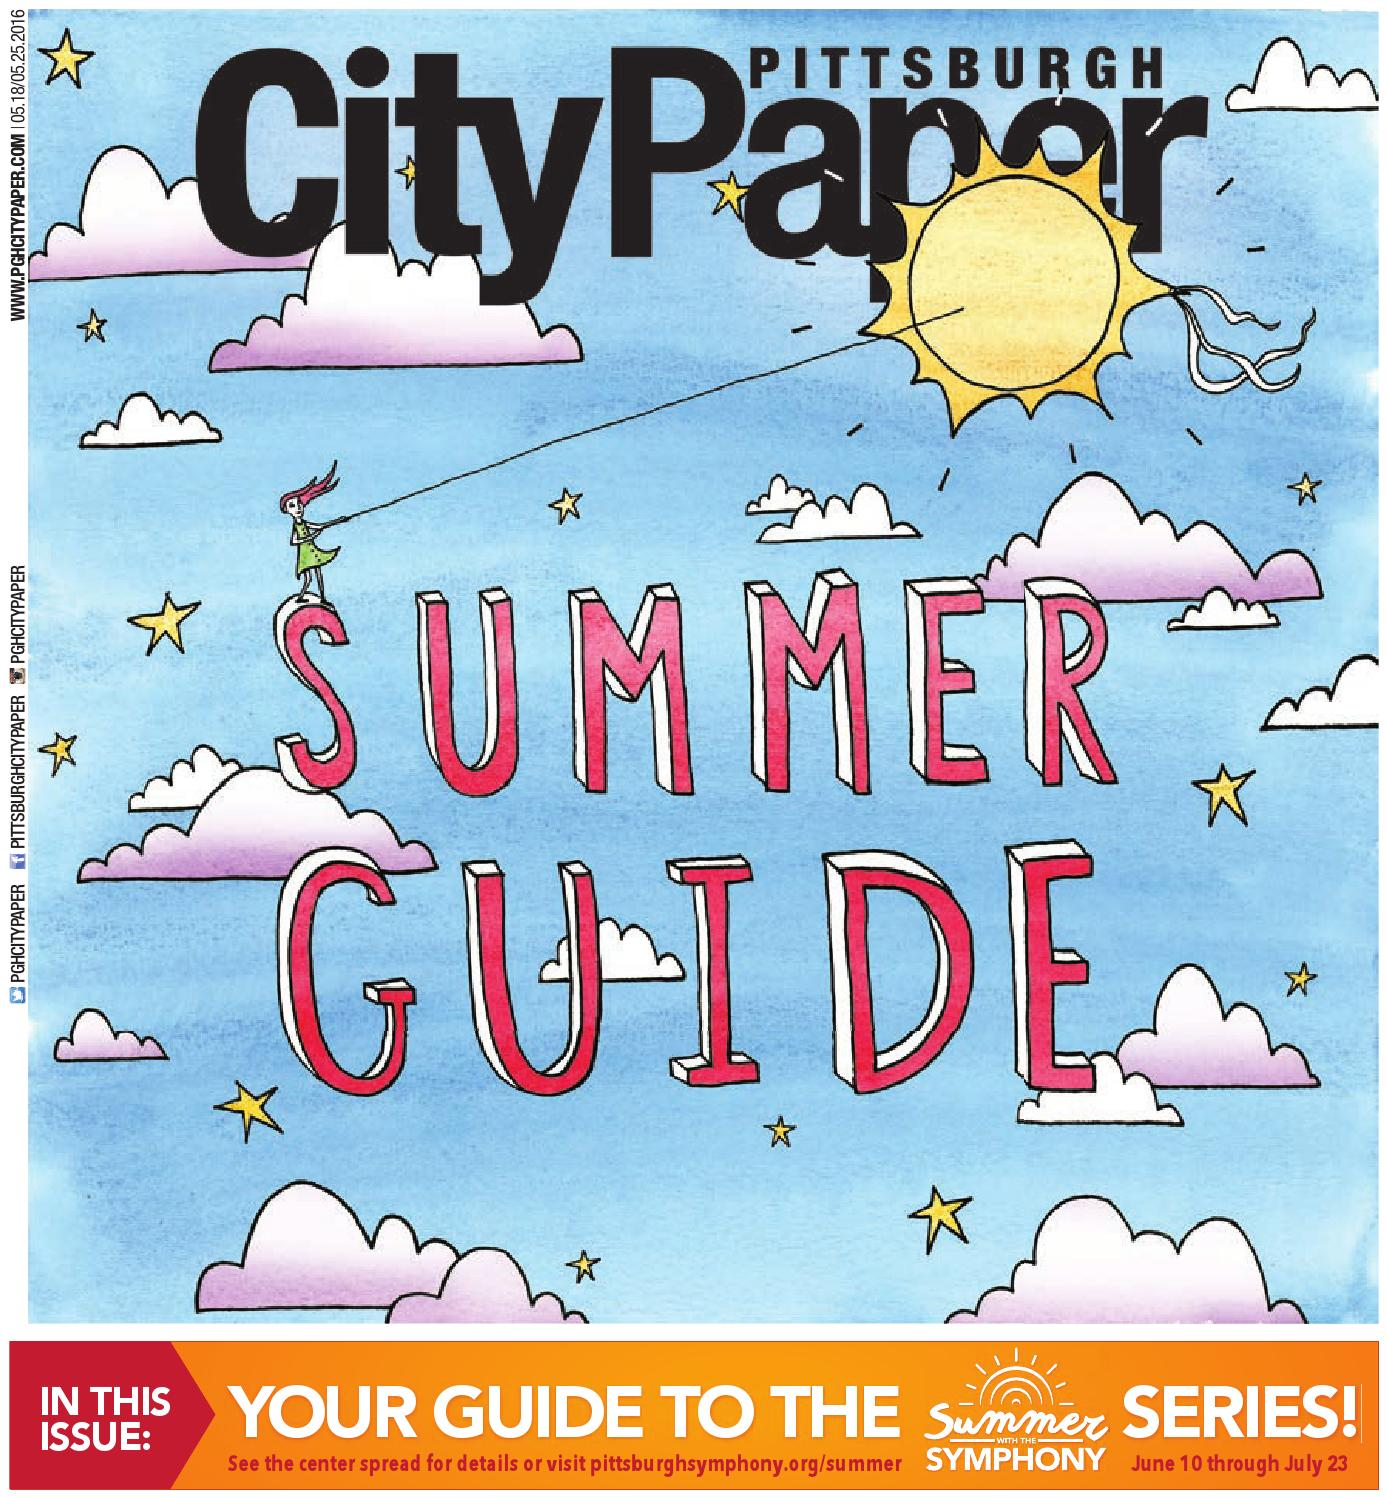 Summer Guide 2016 - Pittsburgh City Paper by Pittsburgh City